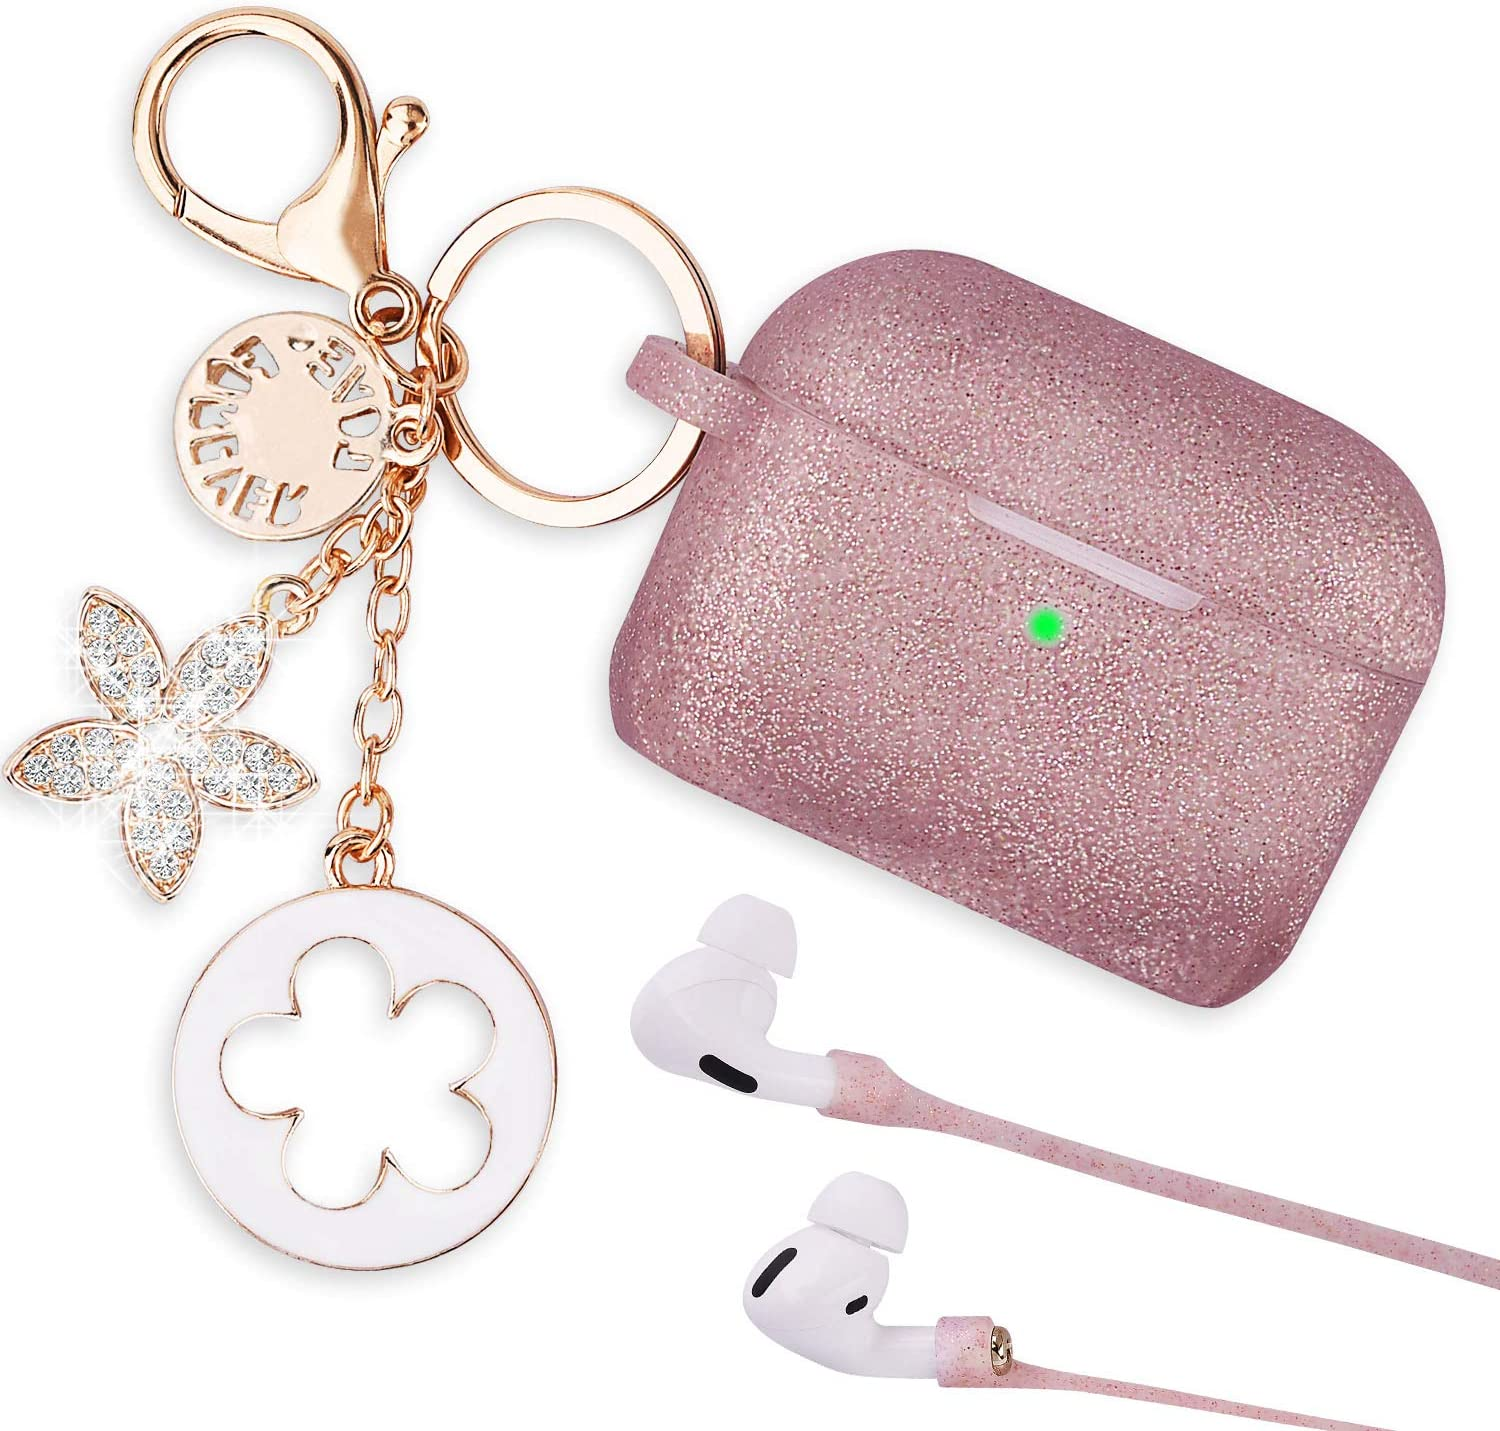 Airpods Pro Case - VIGOSS Airpods 3 Case 2020 Silicone for AirPods Pro Case Cover Women Protective Wireless Charging Case with Accessories Keychain/Strap Rose Gold